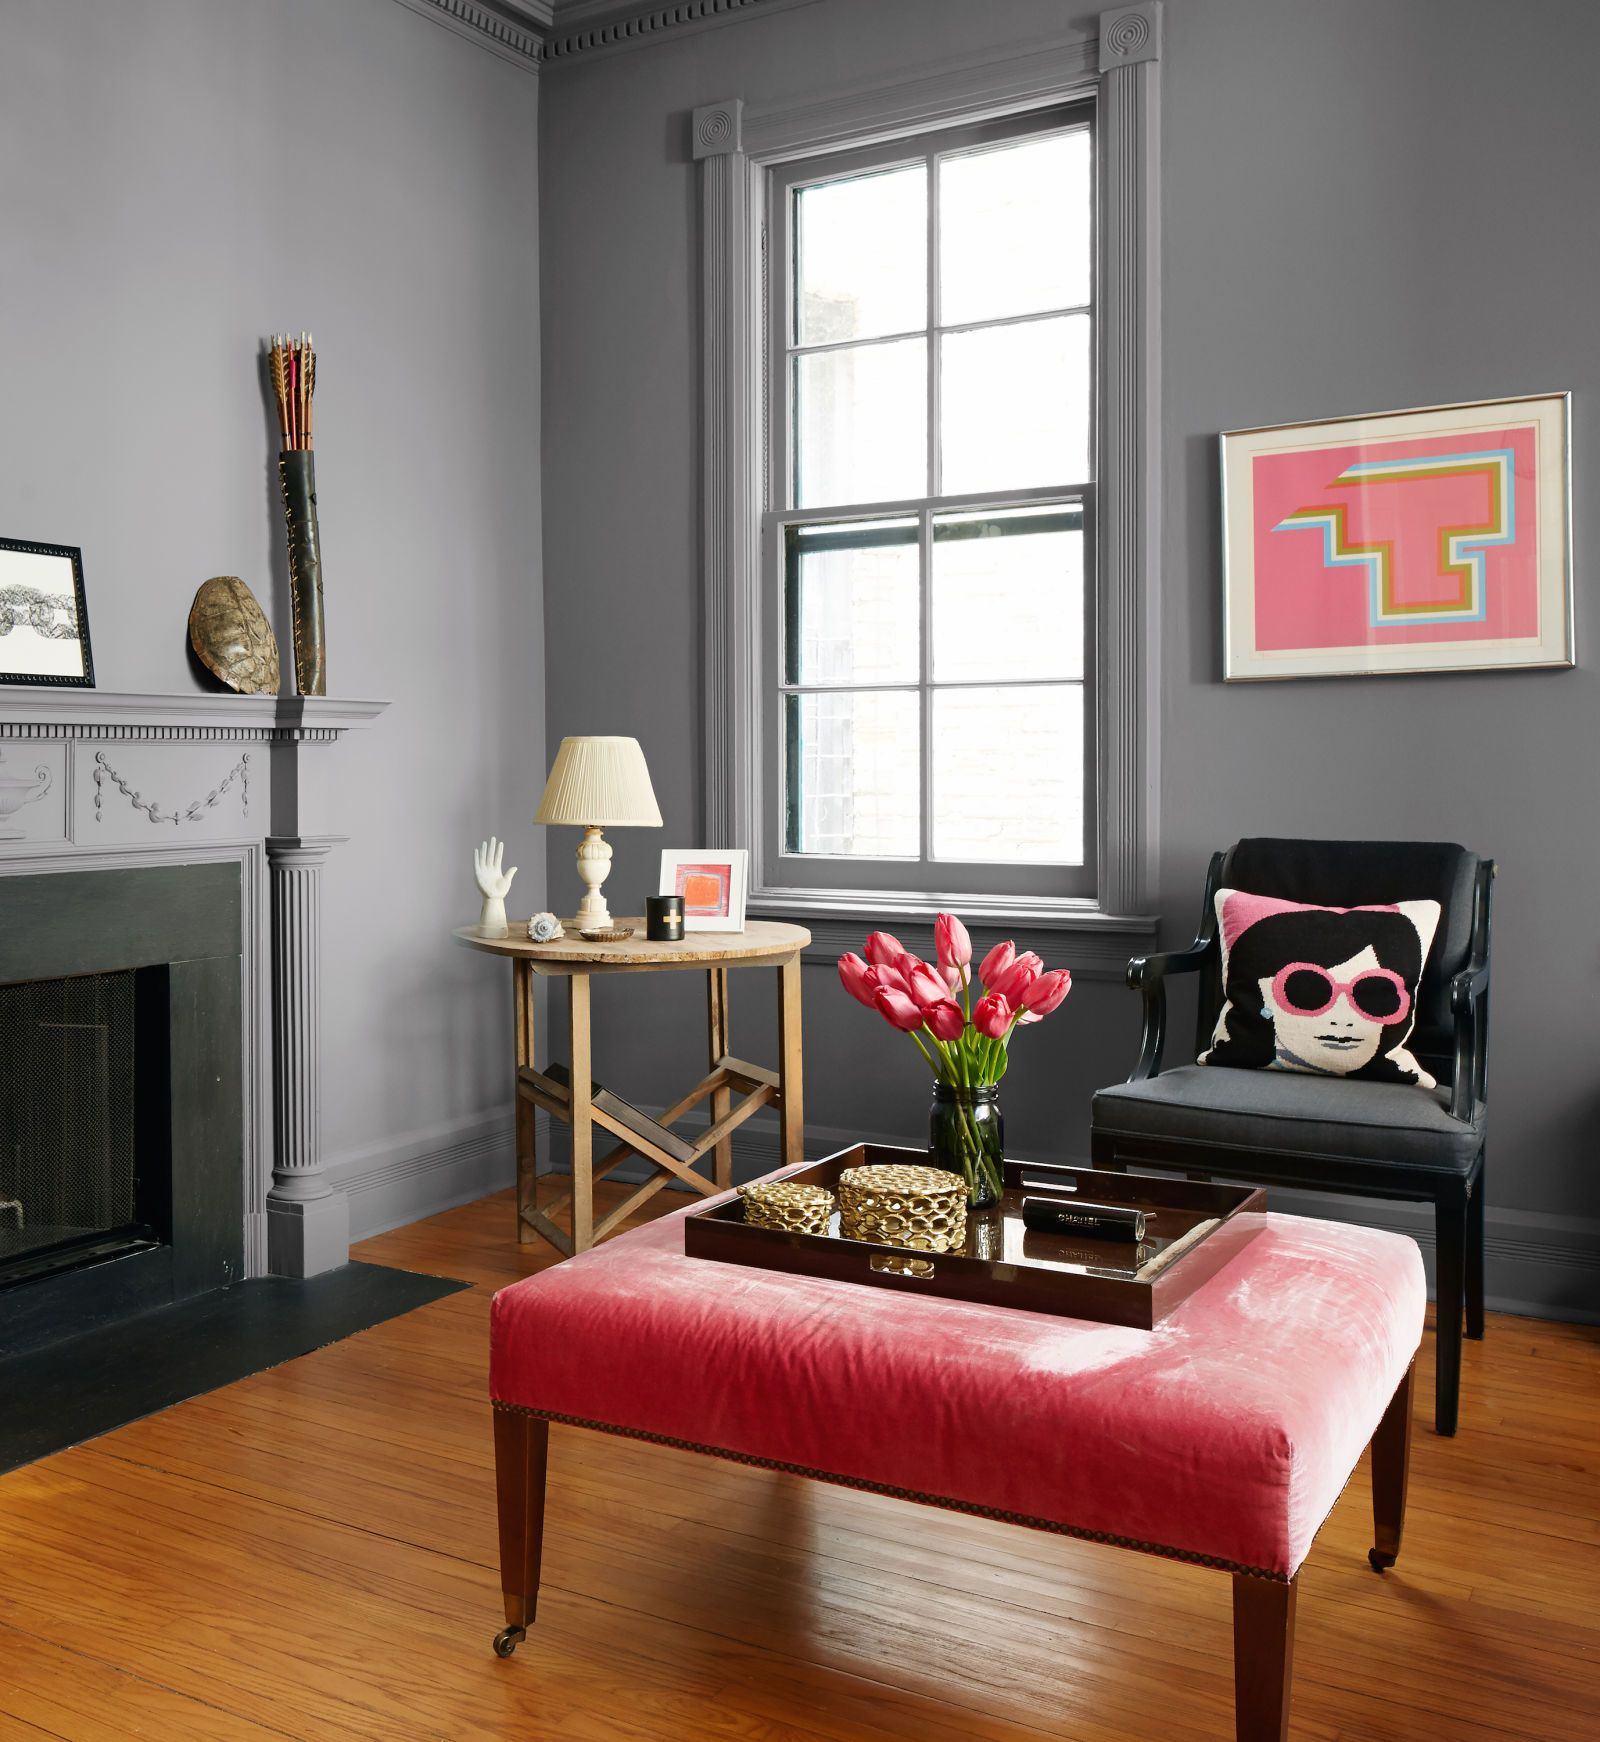 Valspar s 2016 Paint Colors of the Year fer a Palette for Every